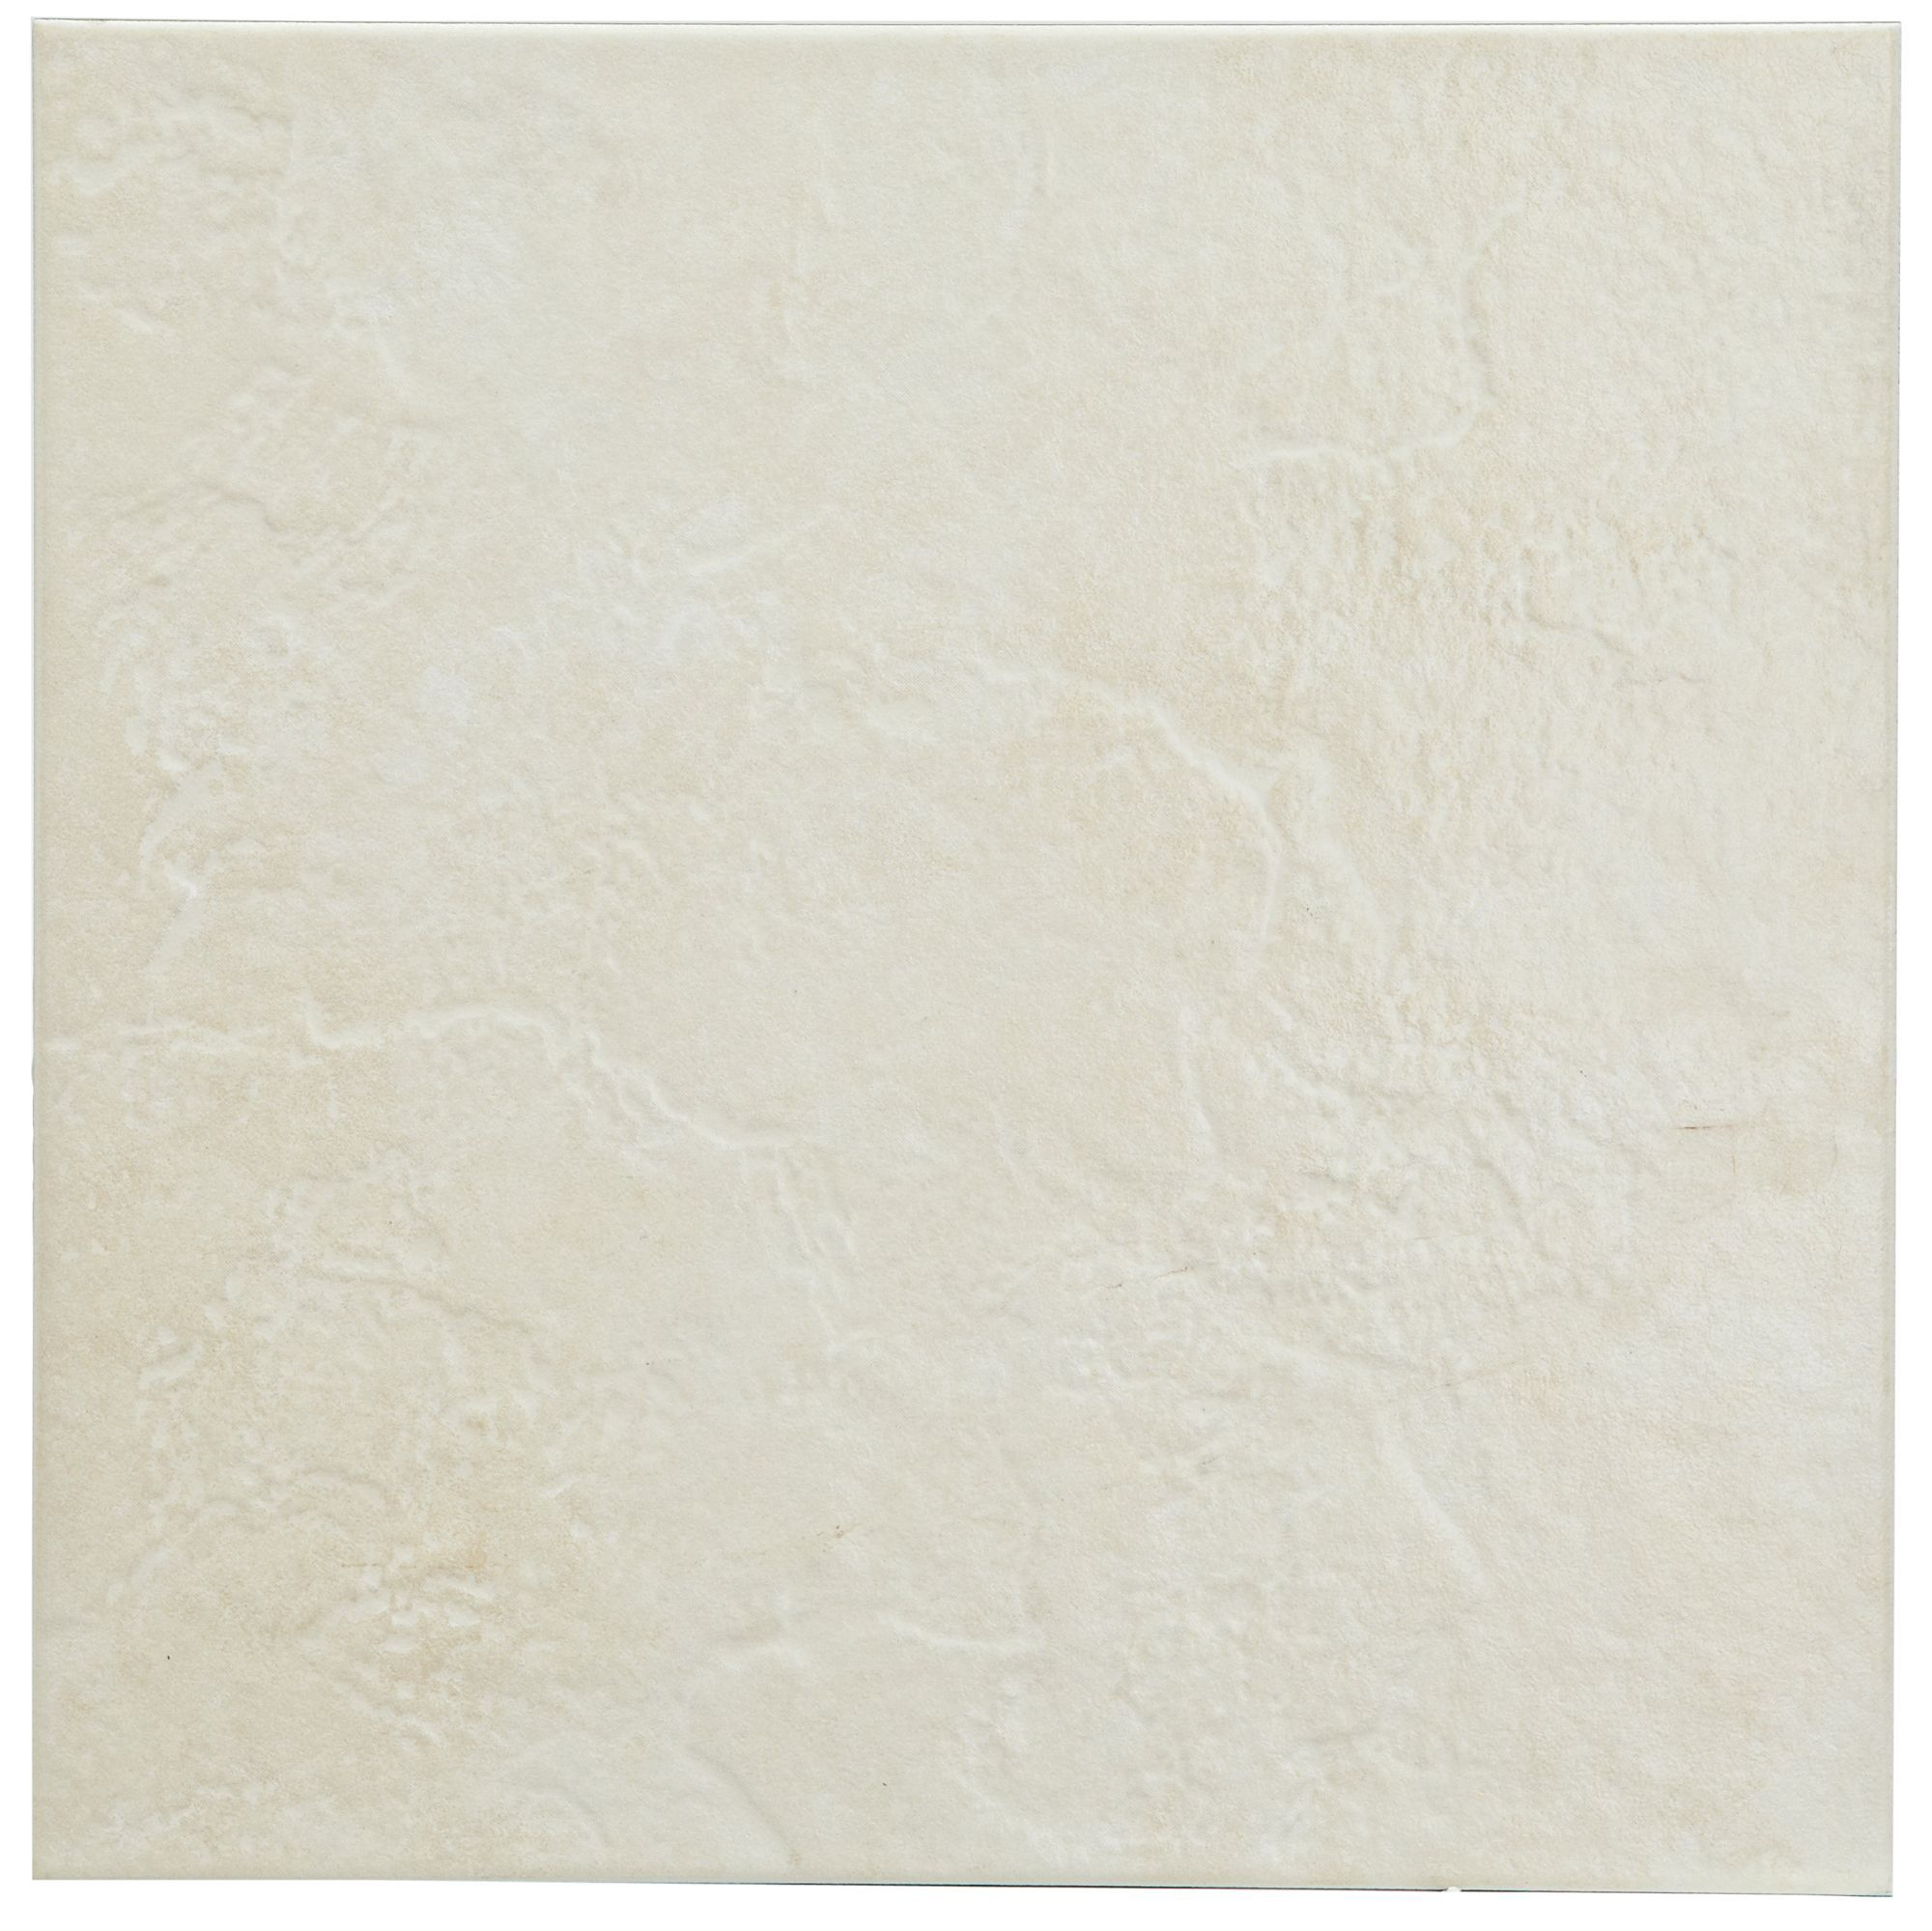 Cirque Beige Stone Effect Ceramic Floor Tile Pack Of 9